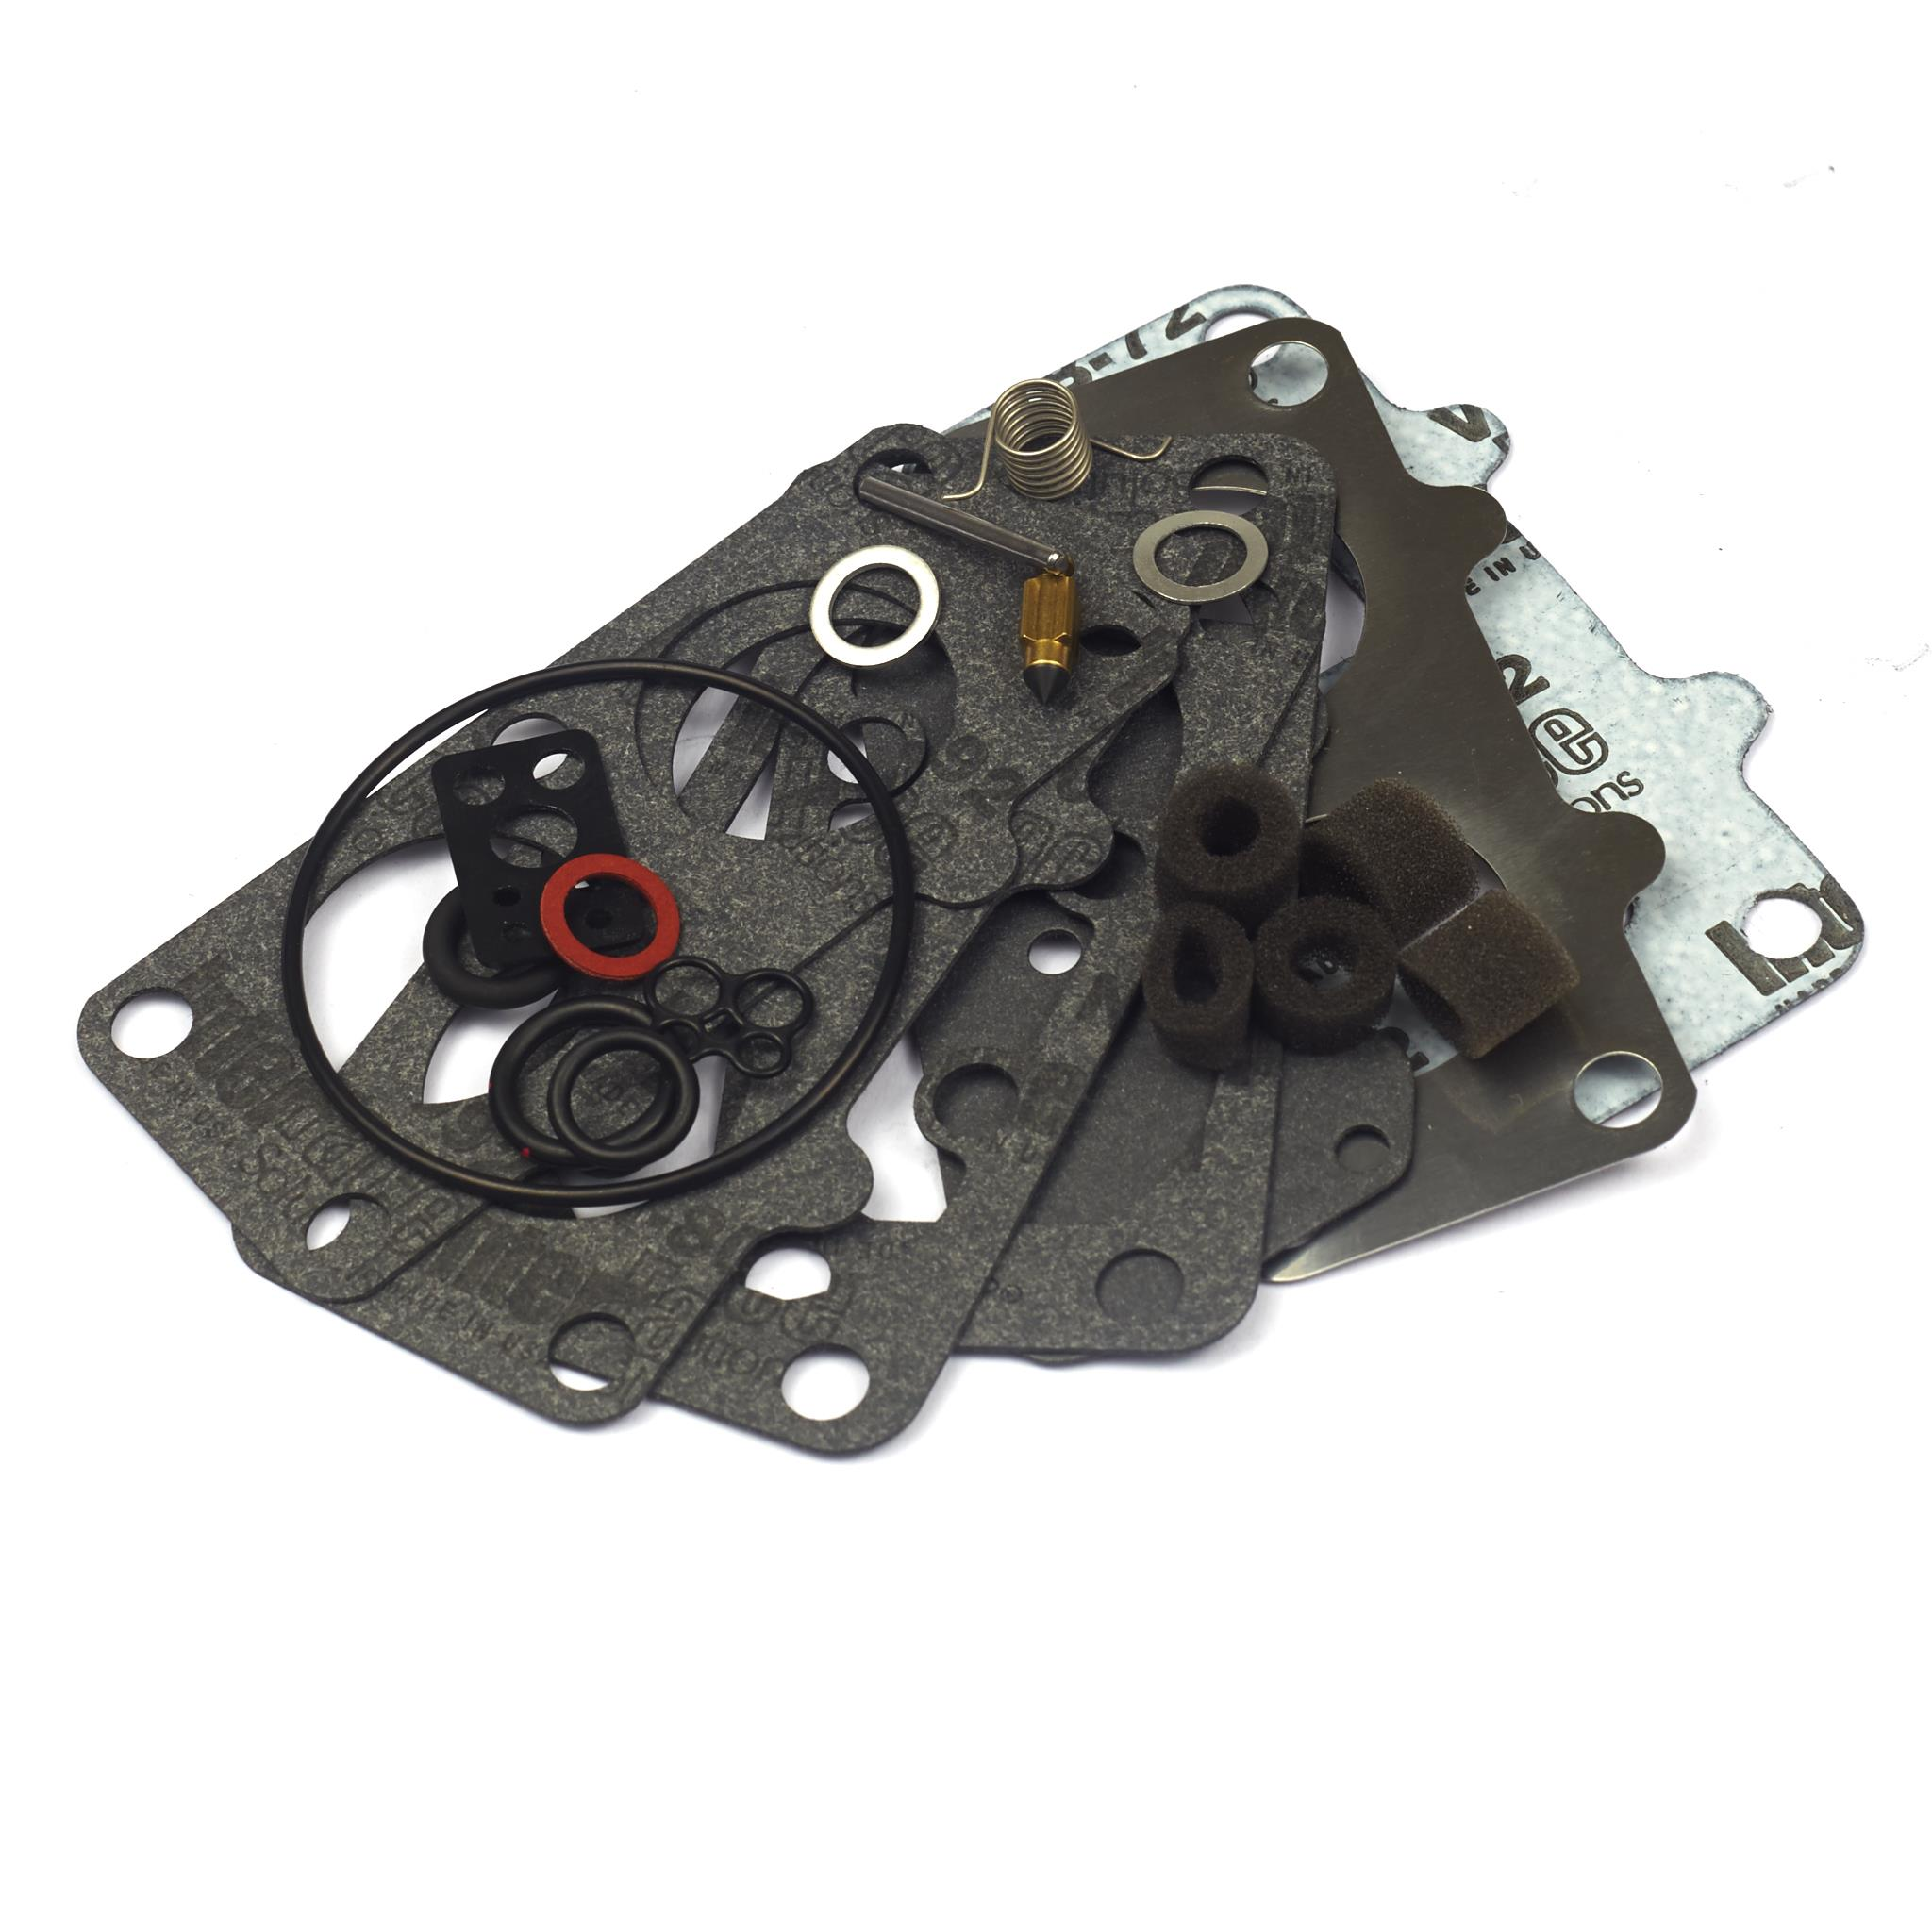 KIT CARB OVERHAUL part# 797890 by Briggs & Stratton